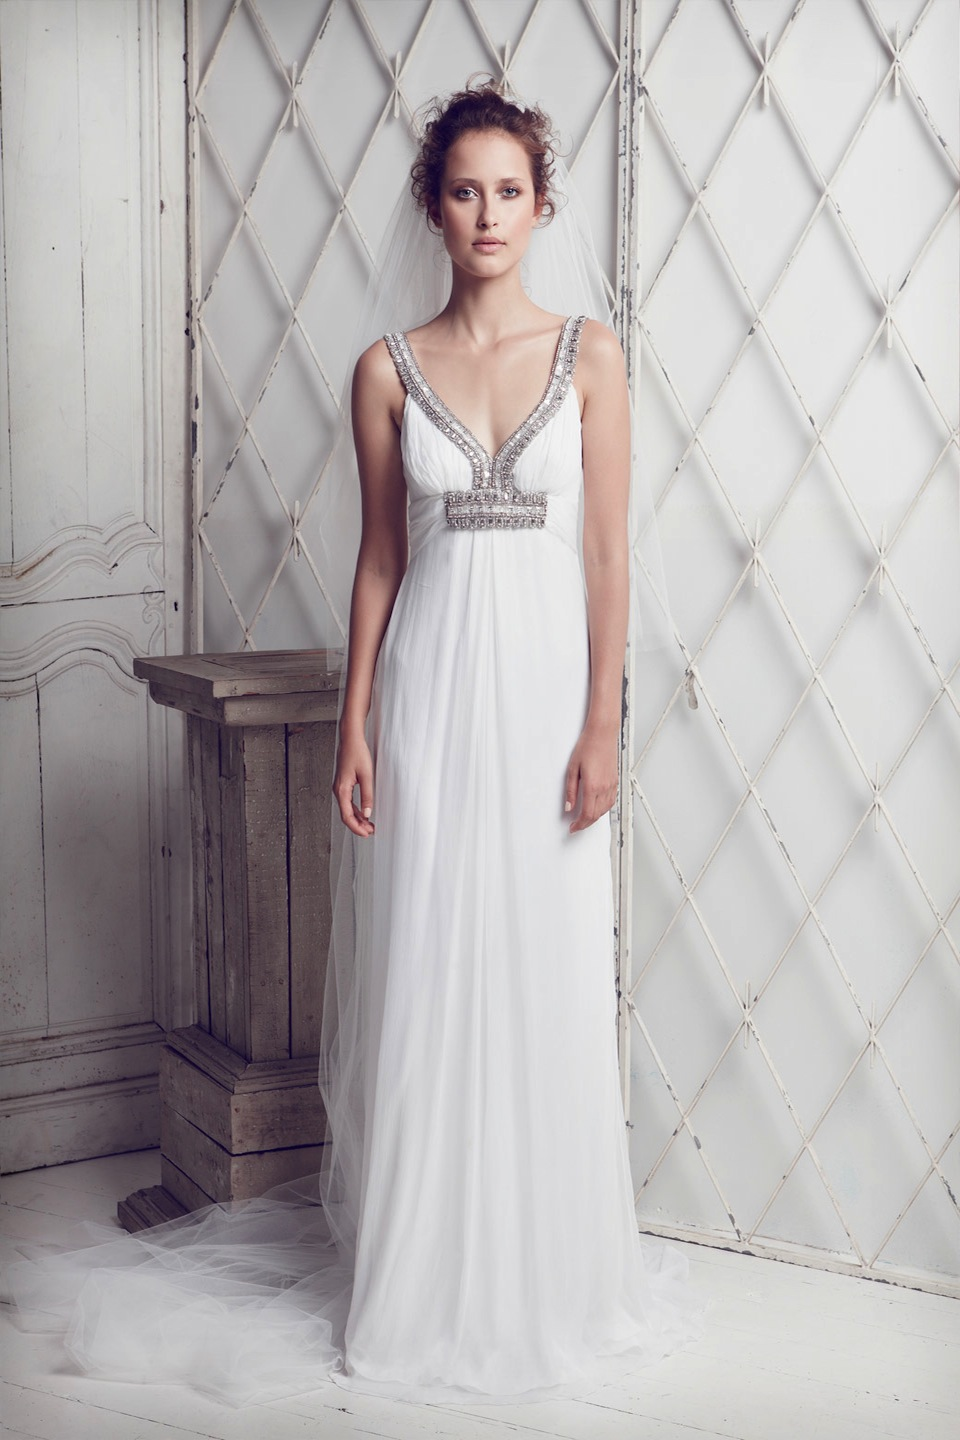 Collette-dinnigan-wedding-dress-2012-bridal-gowns-9.original